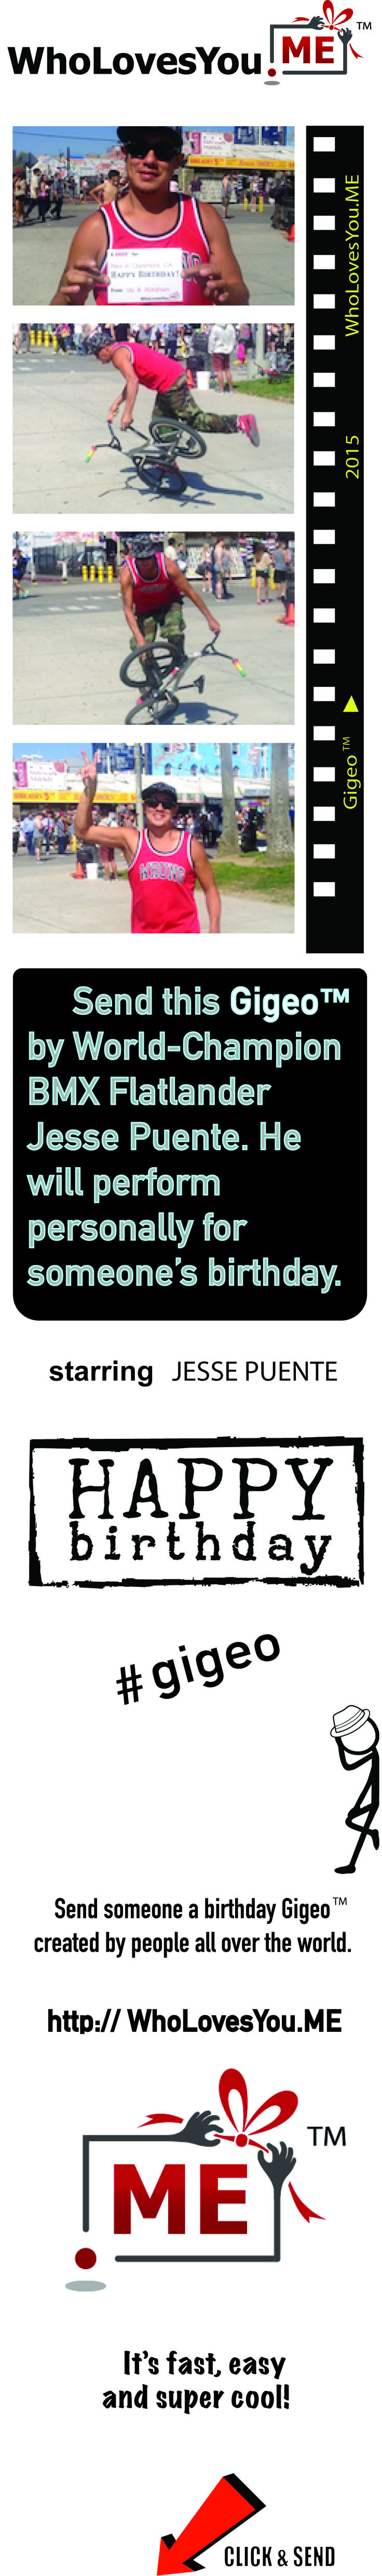 $25 | http://WhoLovesYou.ME | Let BMX flatland legend Jesse Puente send personal birthday greetings from you to that special someone. Jesse will showcase his signature spinning and balancing bike tricks just for them. An unforgettable birthday performance from one winner to another.  http://WhoLovesYou.ME | #gigeo